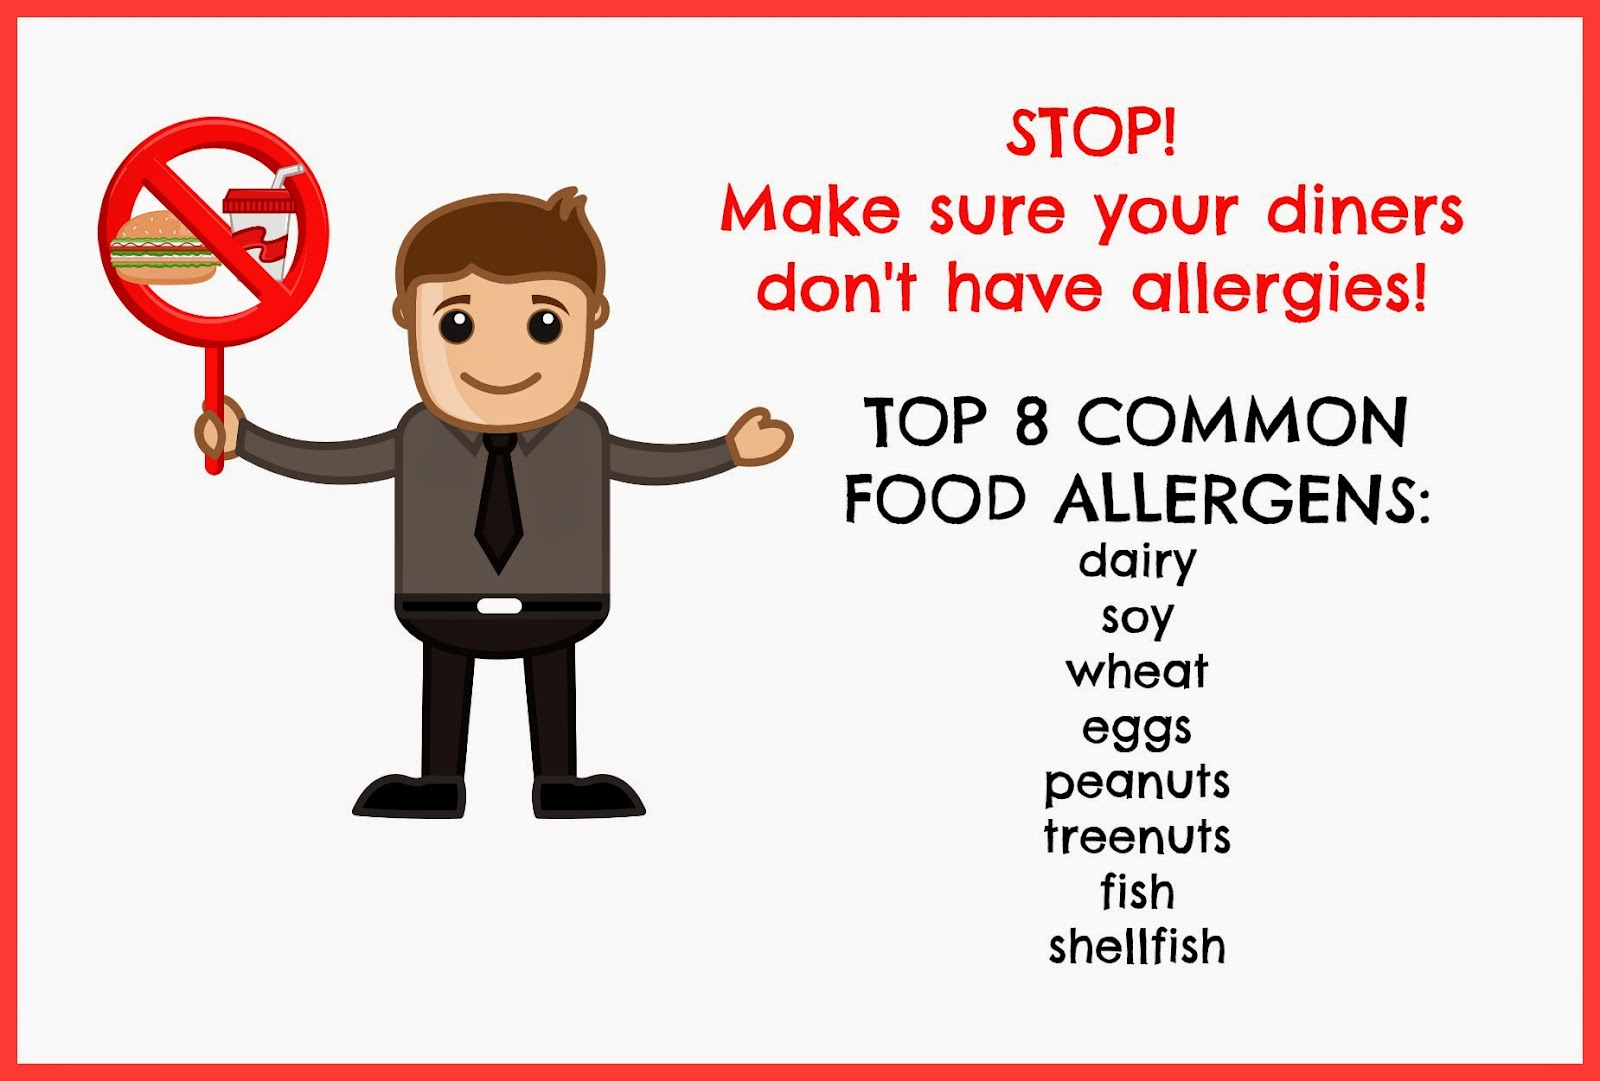 STOP: CHECK TO MAKE SURE YOUR DINNER GUESTS AREN'T ALLERGIC TO THEIR MEAL!